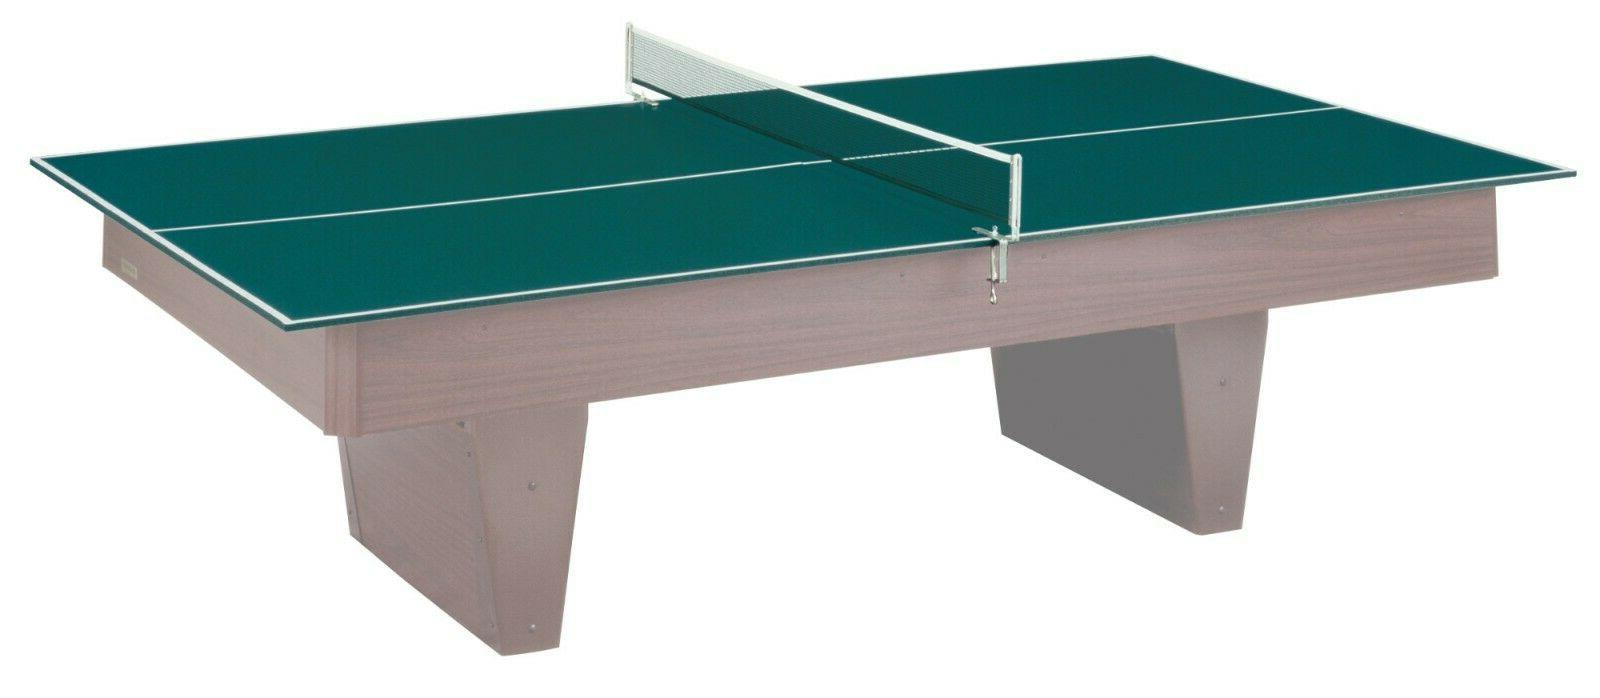 duo table tennis conversion top to convert